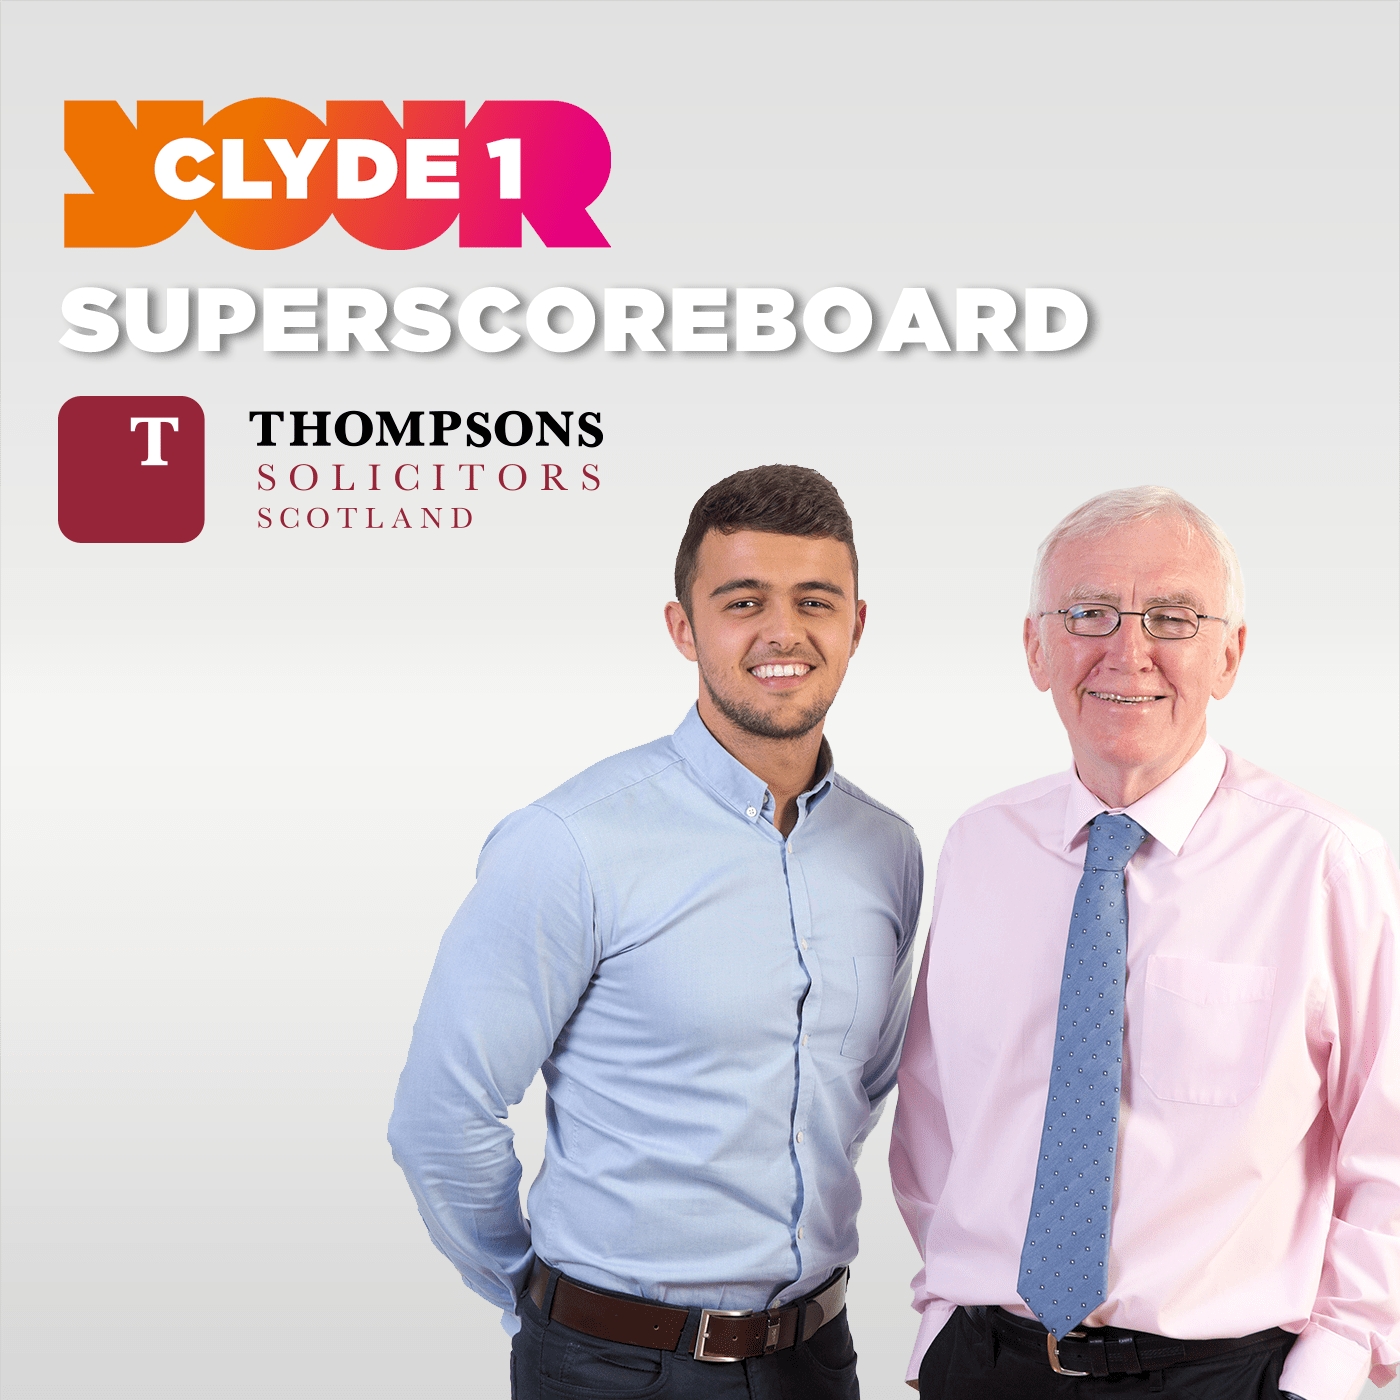 Tuesday 2nd April Clyde 1 Superscoreboard